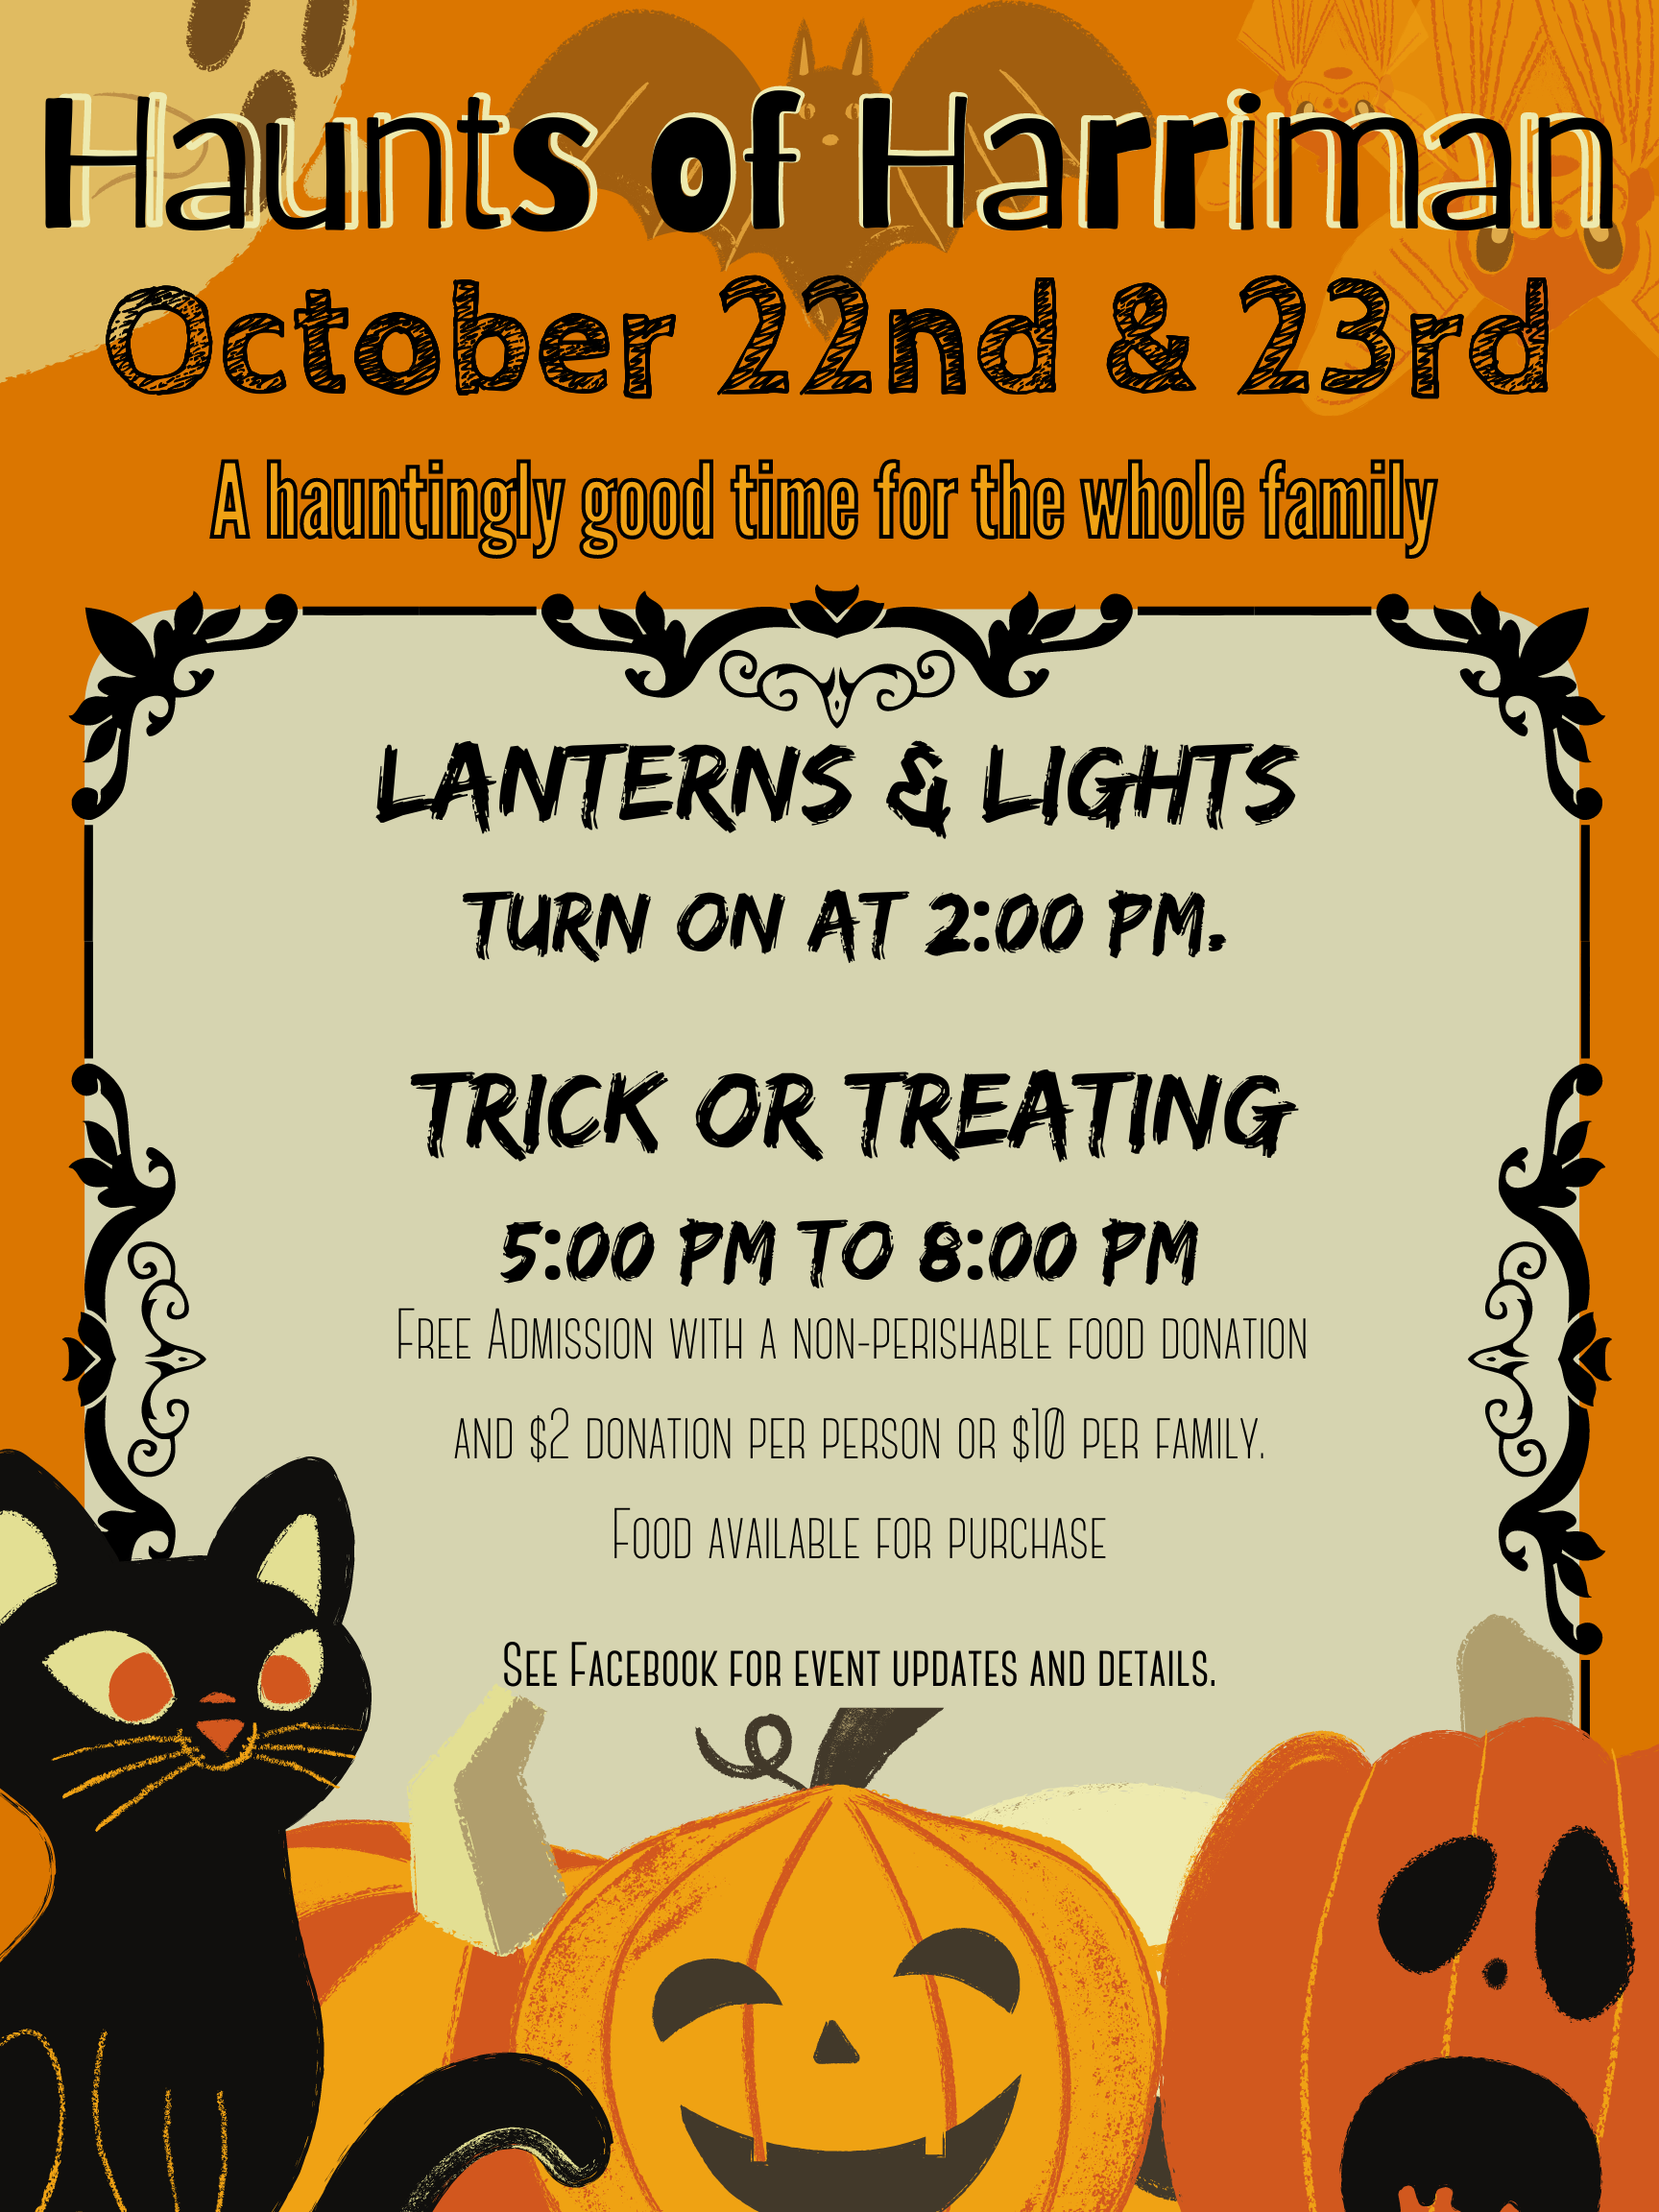 Haunts of Harriman event flyer with description of event and times, info can be found in event description